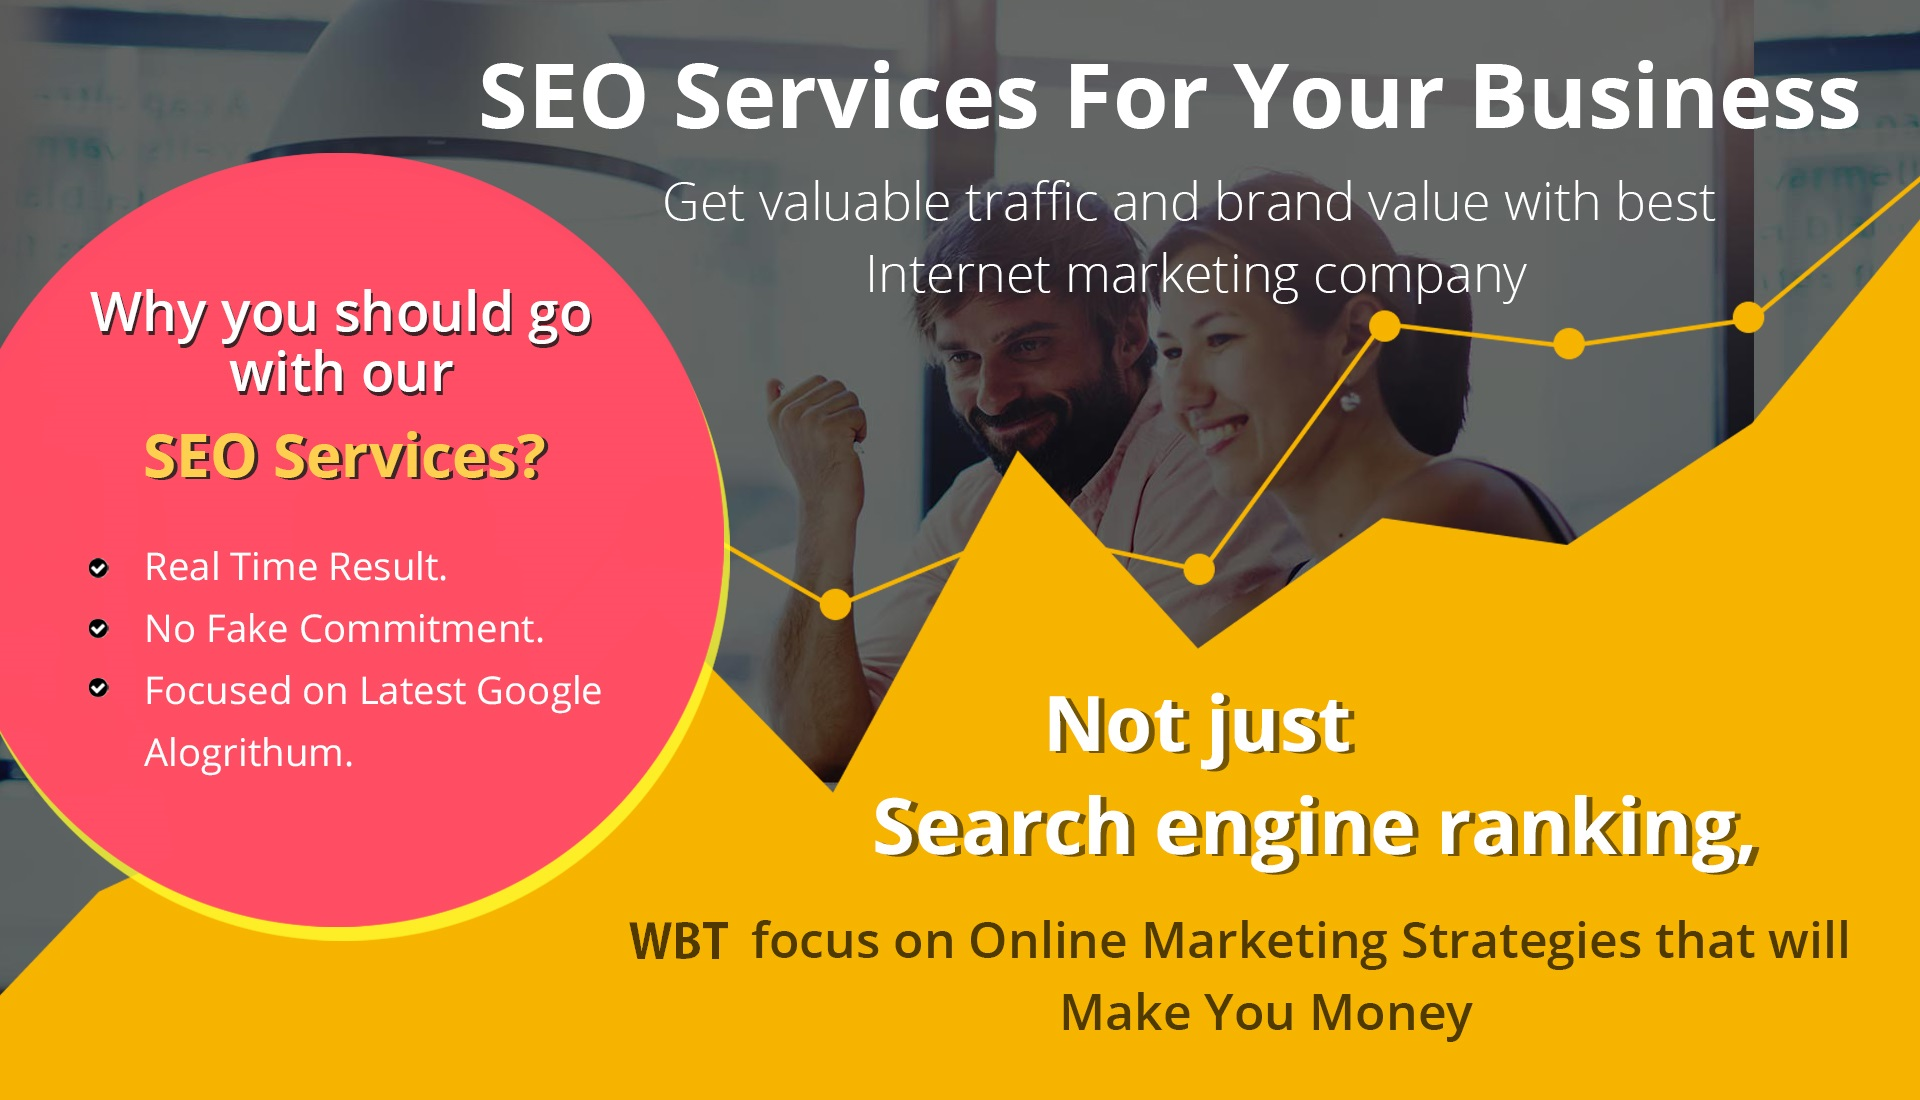 Is The Urge Of Getting The SEO Services For Your Business Too Vital?